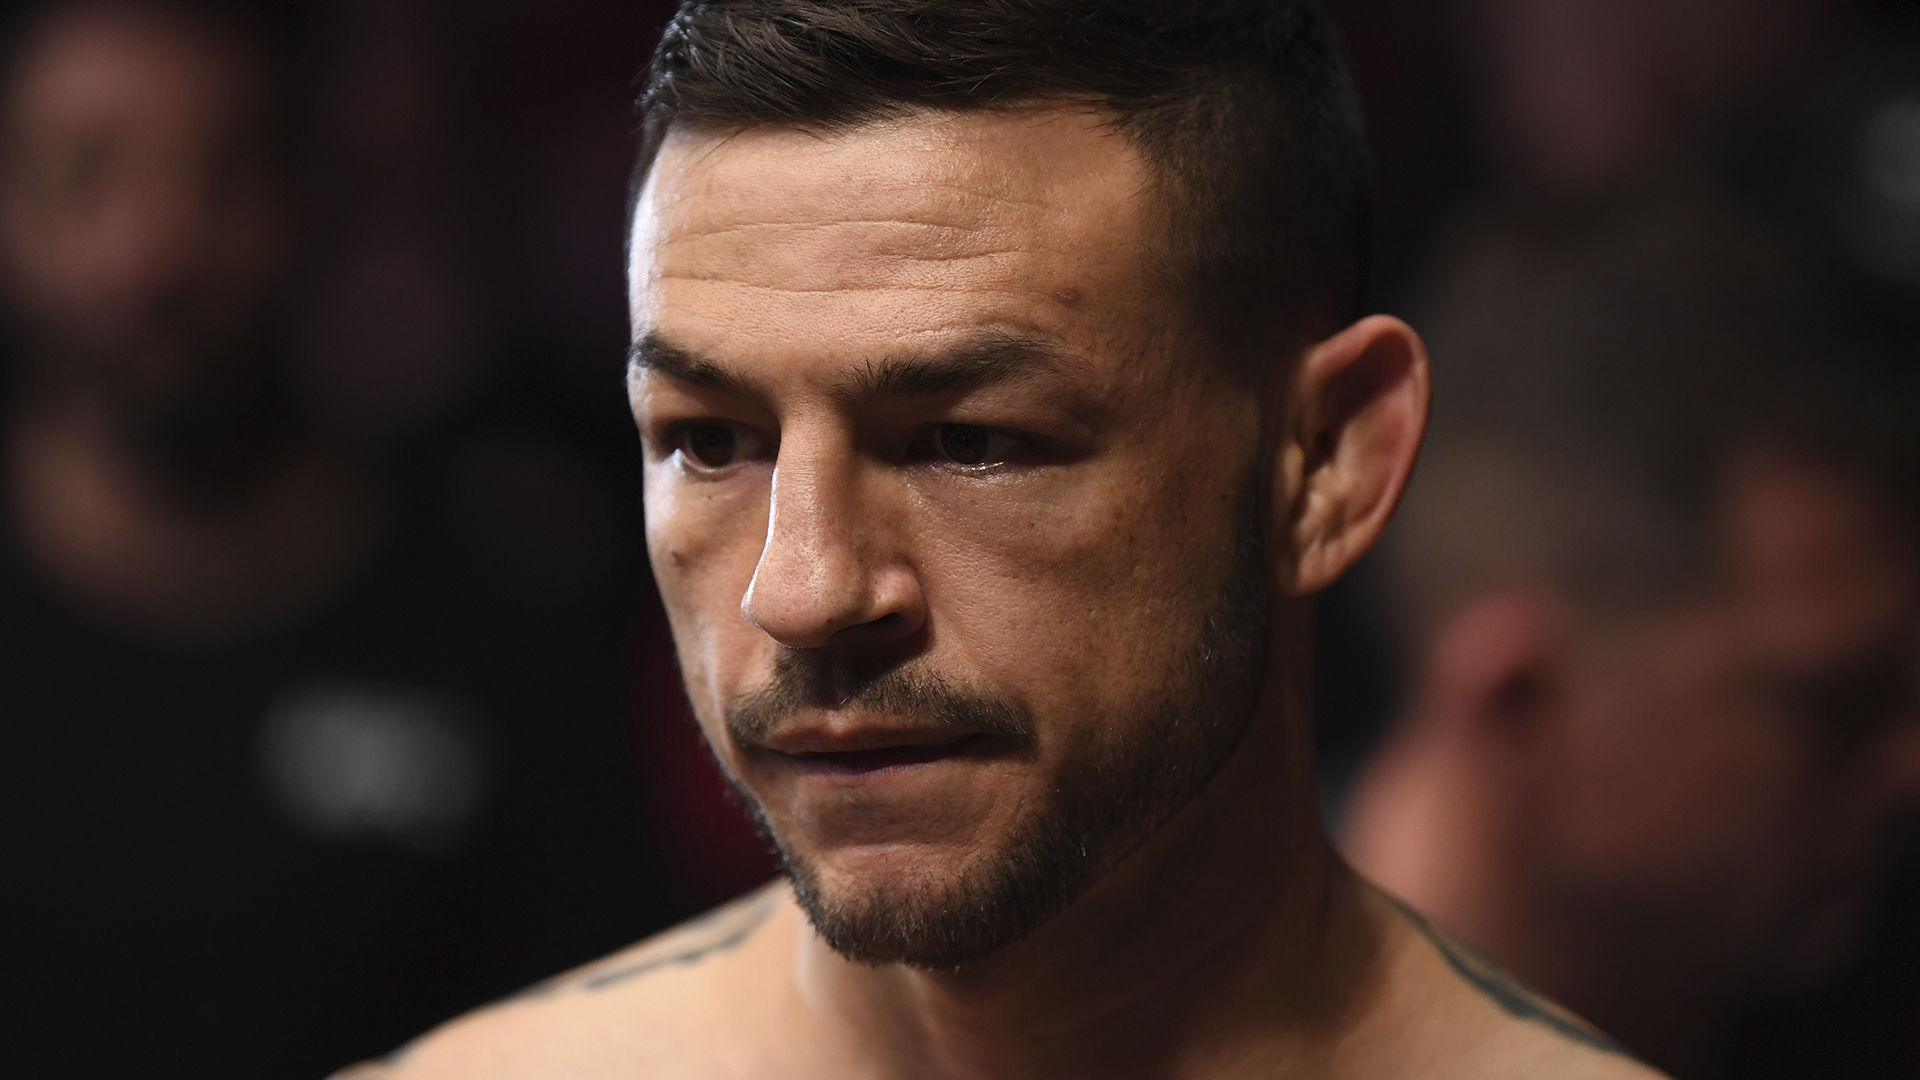 Cub Swanson prepares to enter the Octagon prior to his featherweight bout against Shane Burgos during the UFC Fight Night event at Canadian Tire Centre on May 4, 2019 in Ottawa, Ontario, Canada. (Photo by Jeff Bottari/Zuffa LLC)